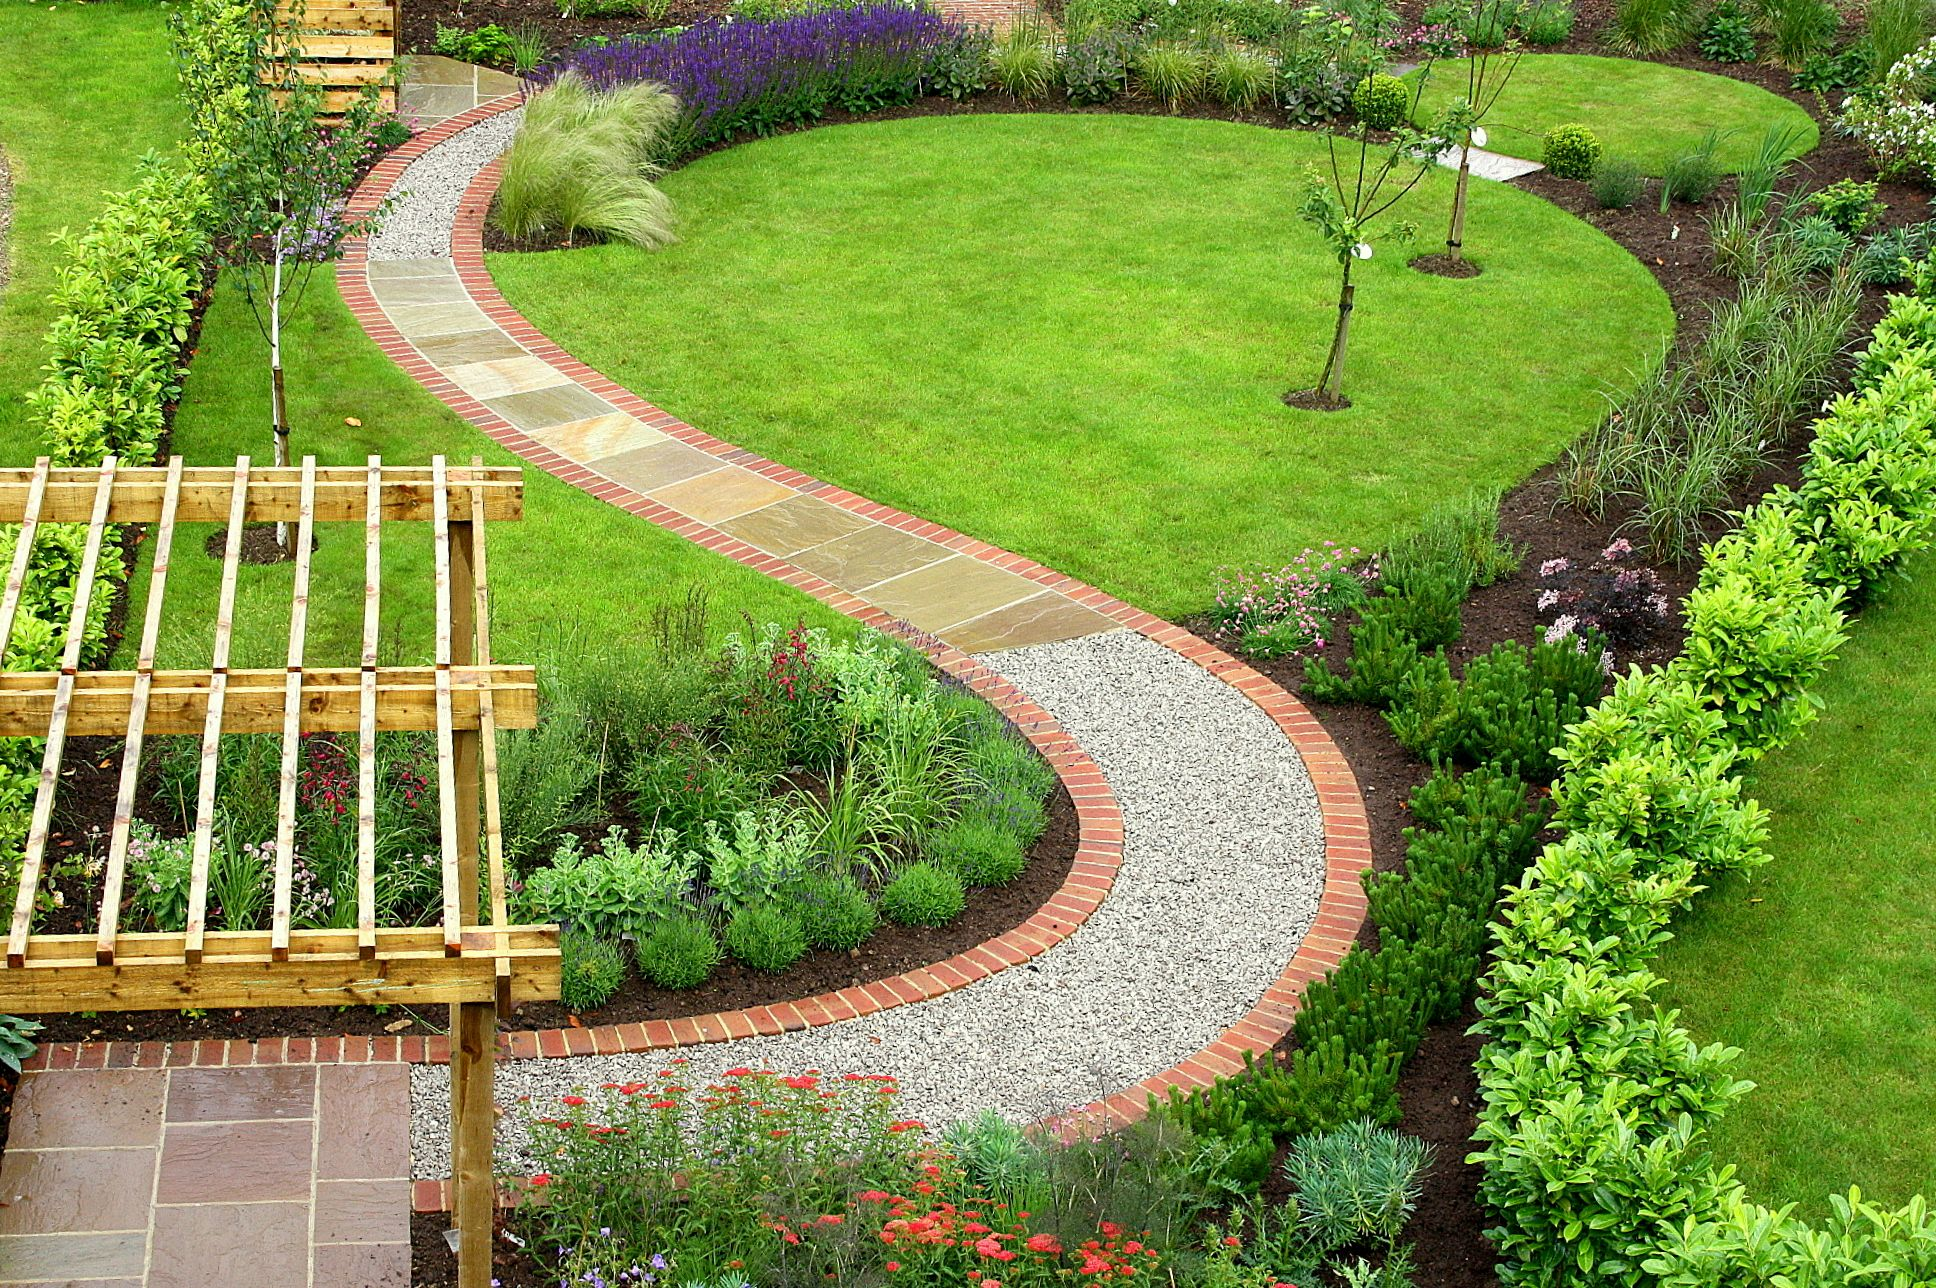 Garden, Awesome Green Garden Ideas With Small Curve Way: Cool Garden Designs  For Your Lovely Home